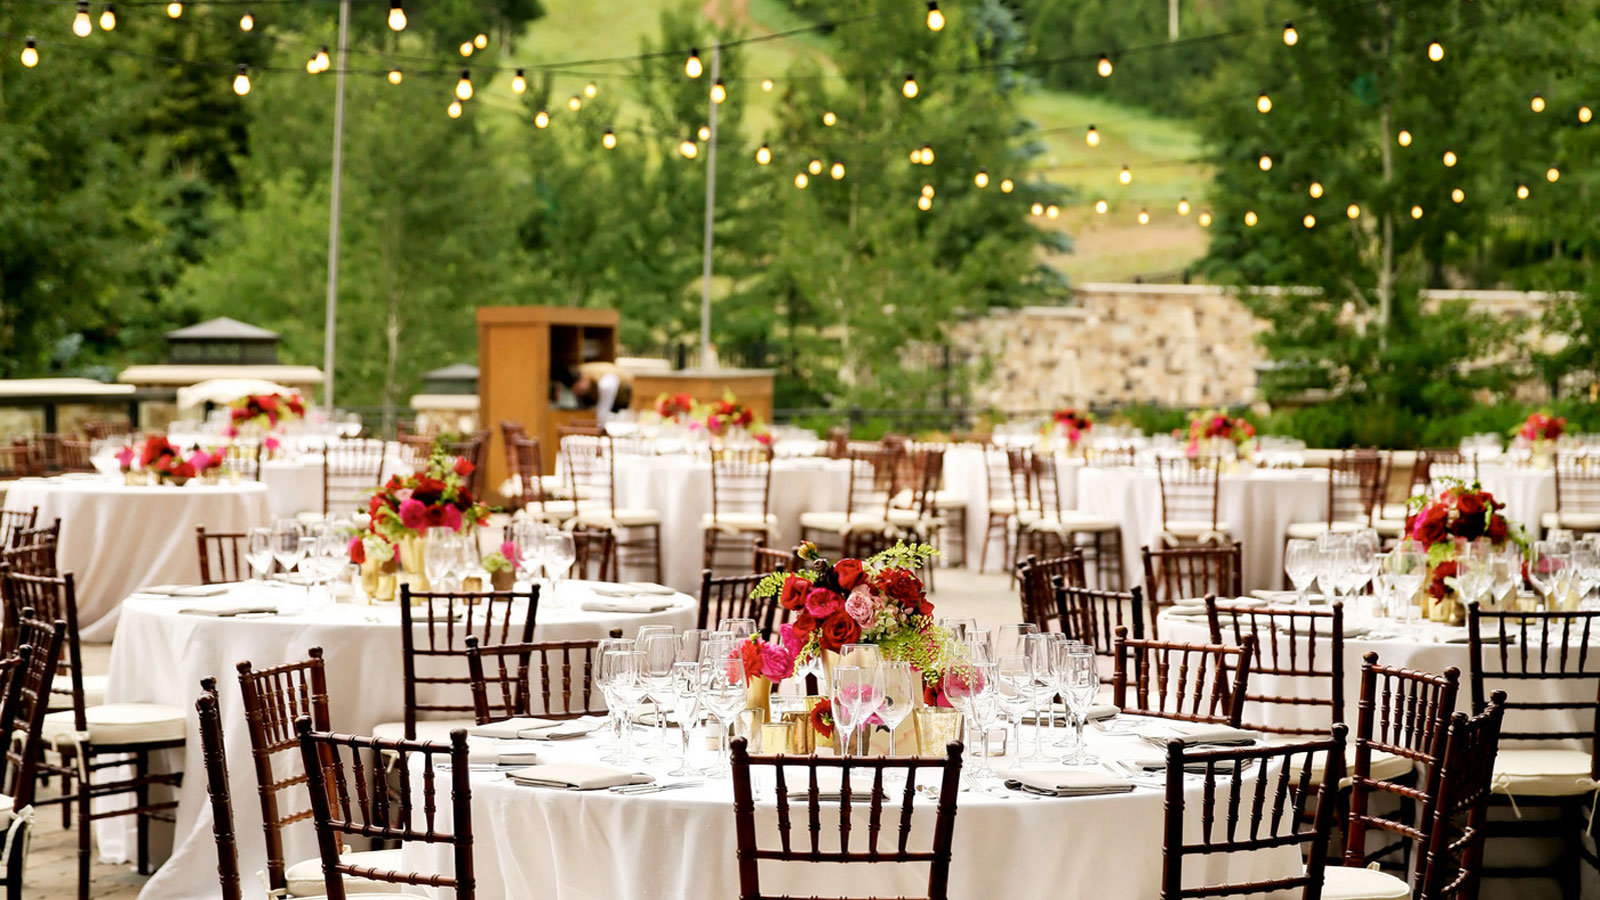 Park City Wedding Venues - Rehearsal